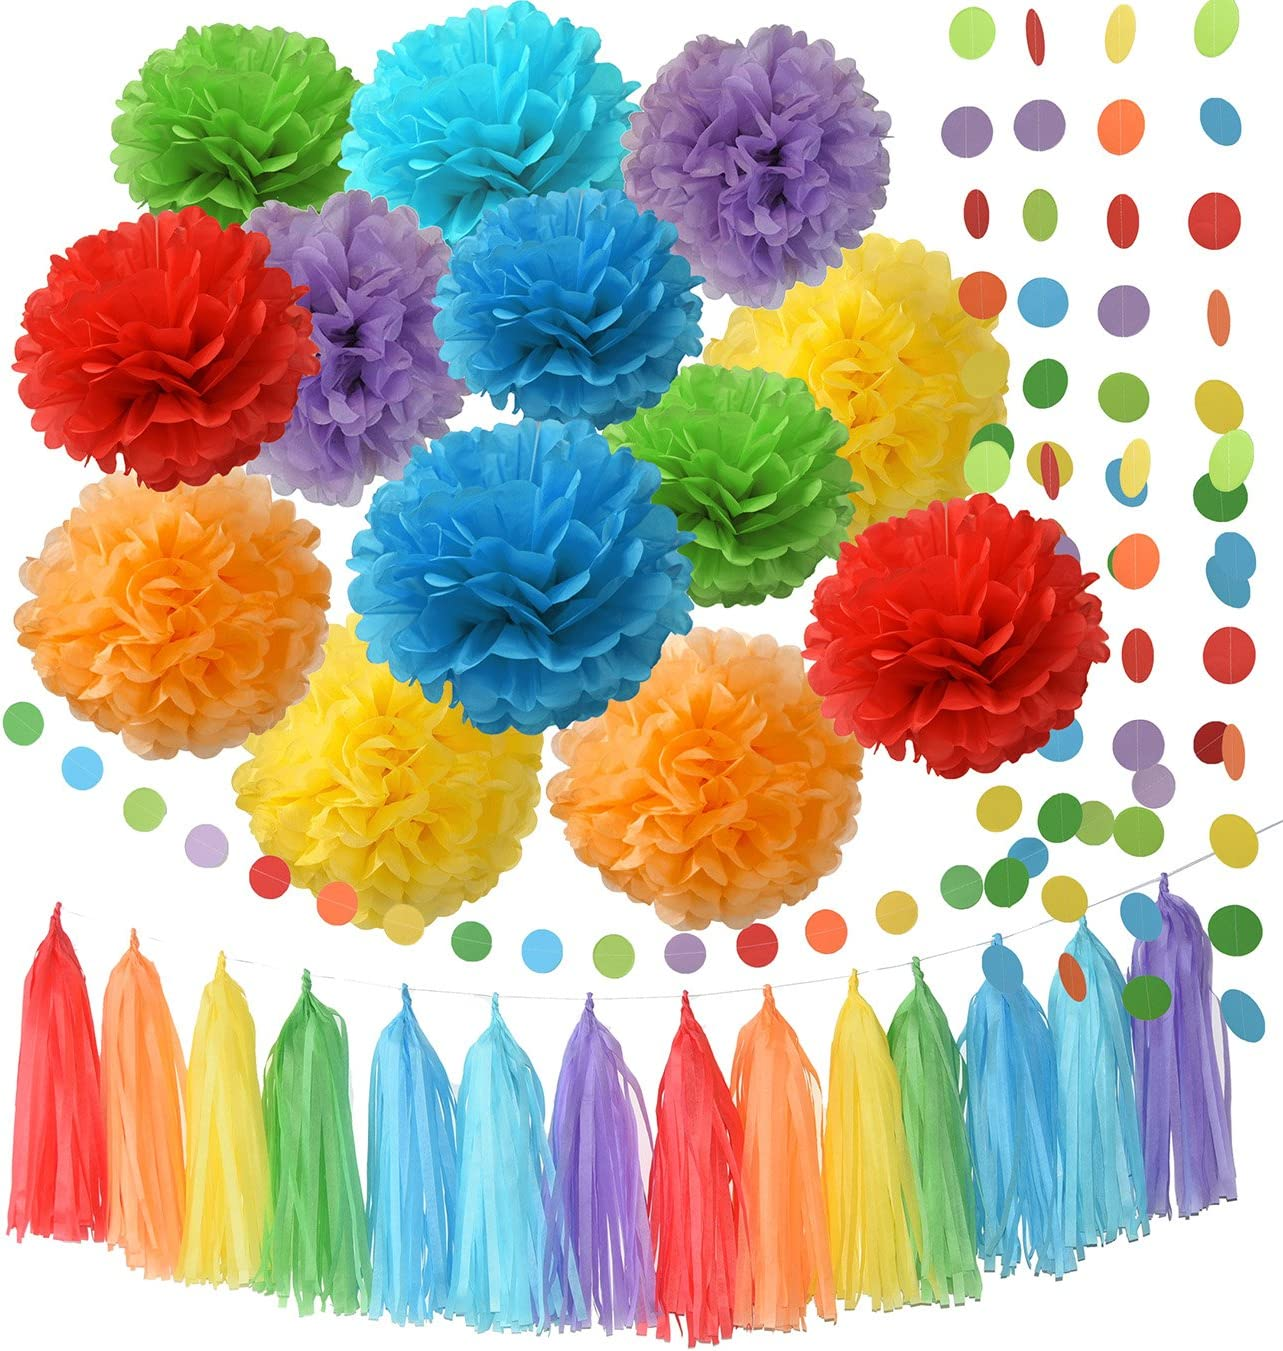 Details about  /RAINBOW MULTI-COLORED PAPER LANTERNS 3 ~ Birthday Party Supplies Decorations